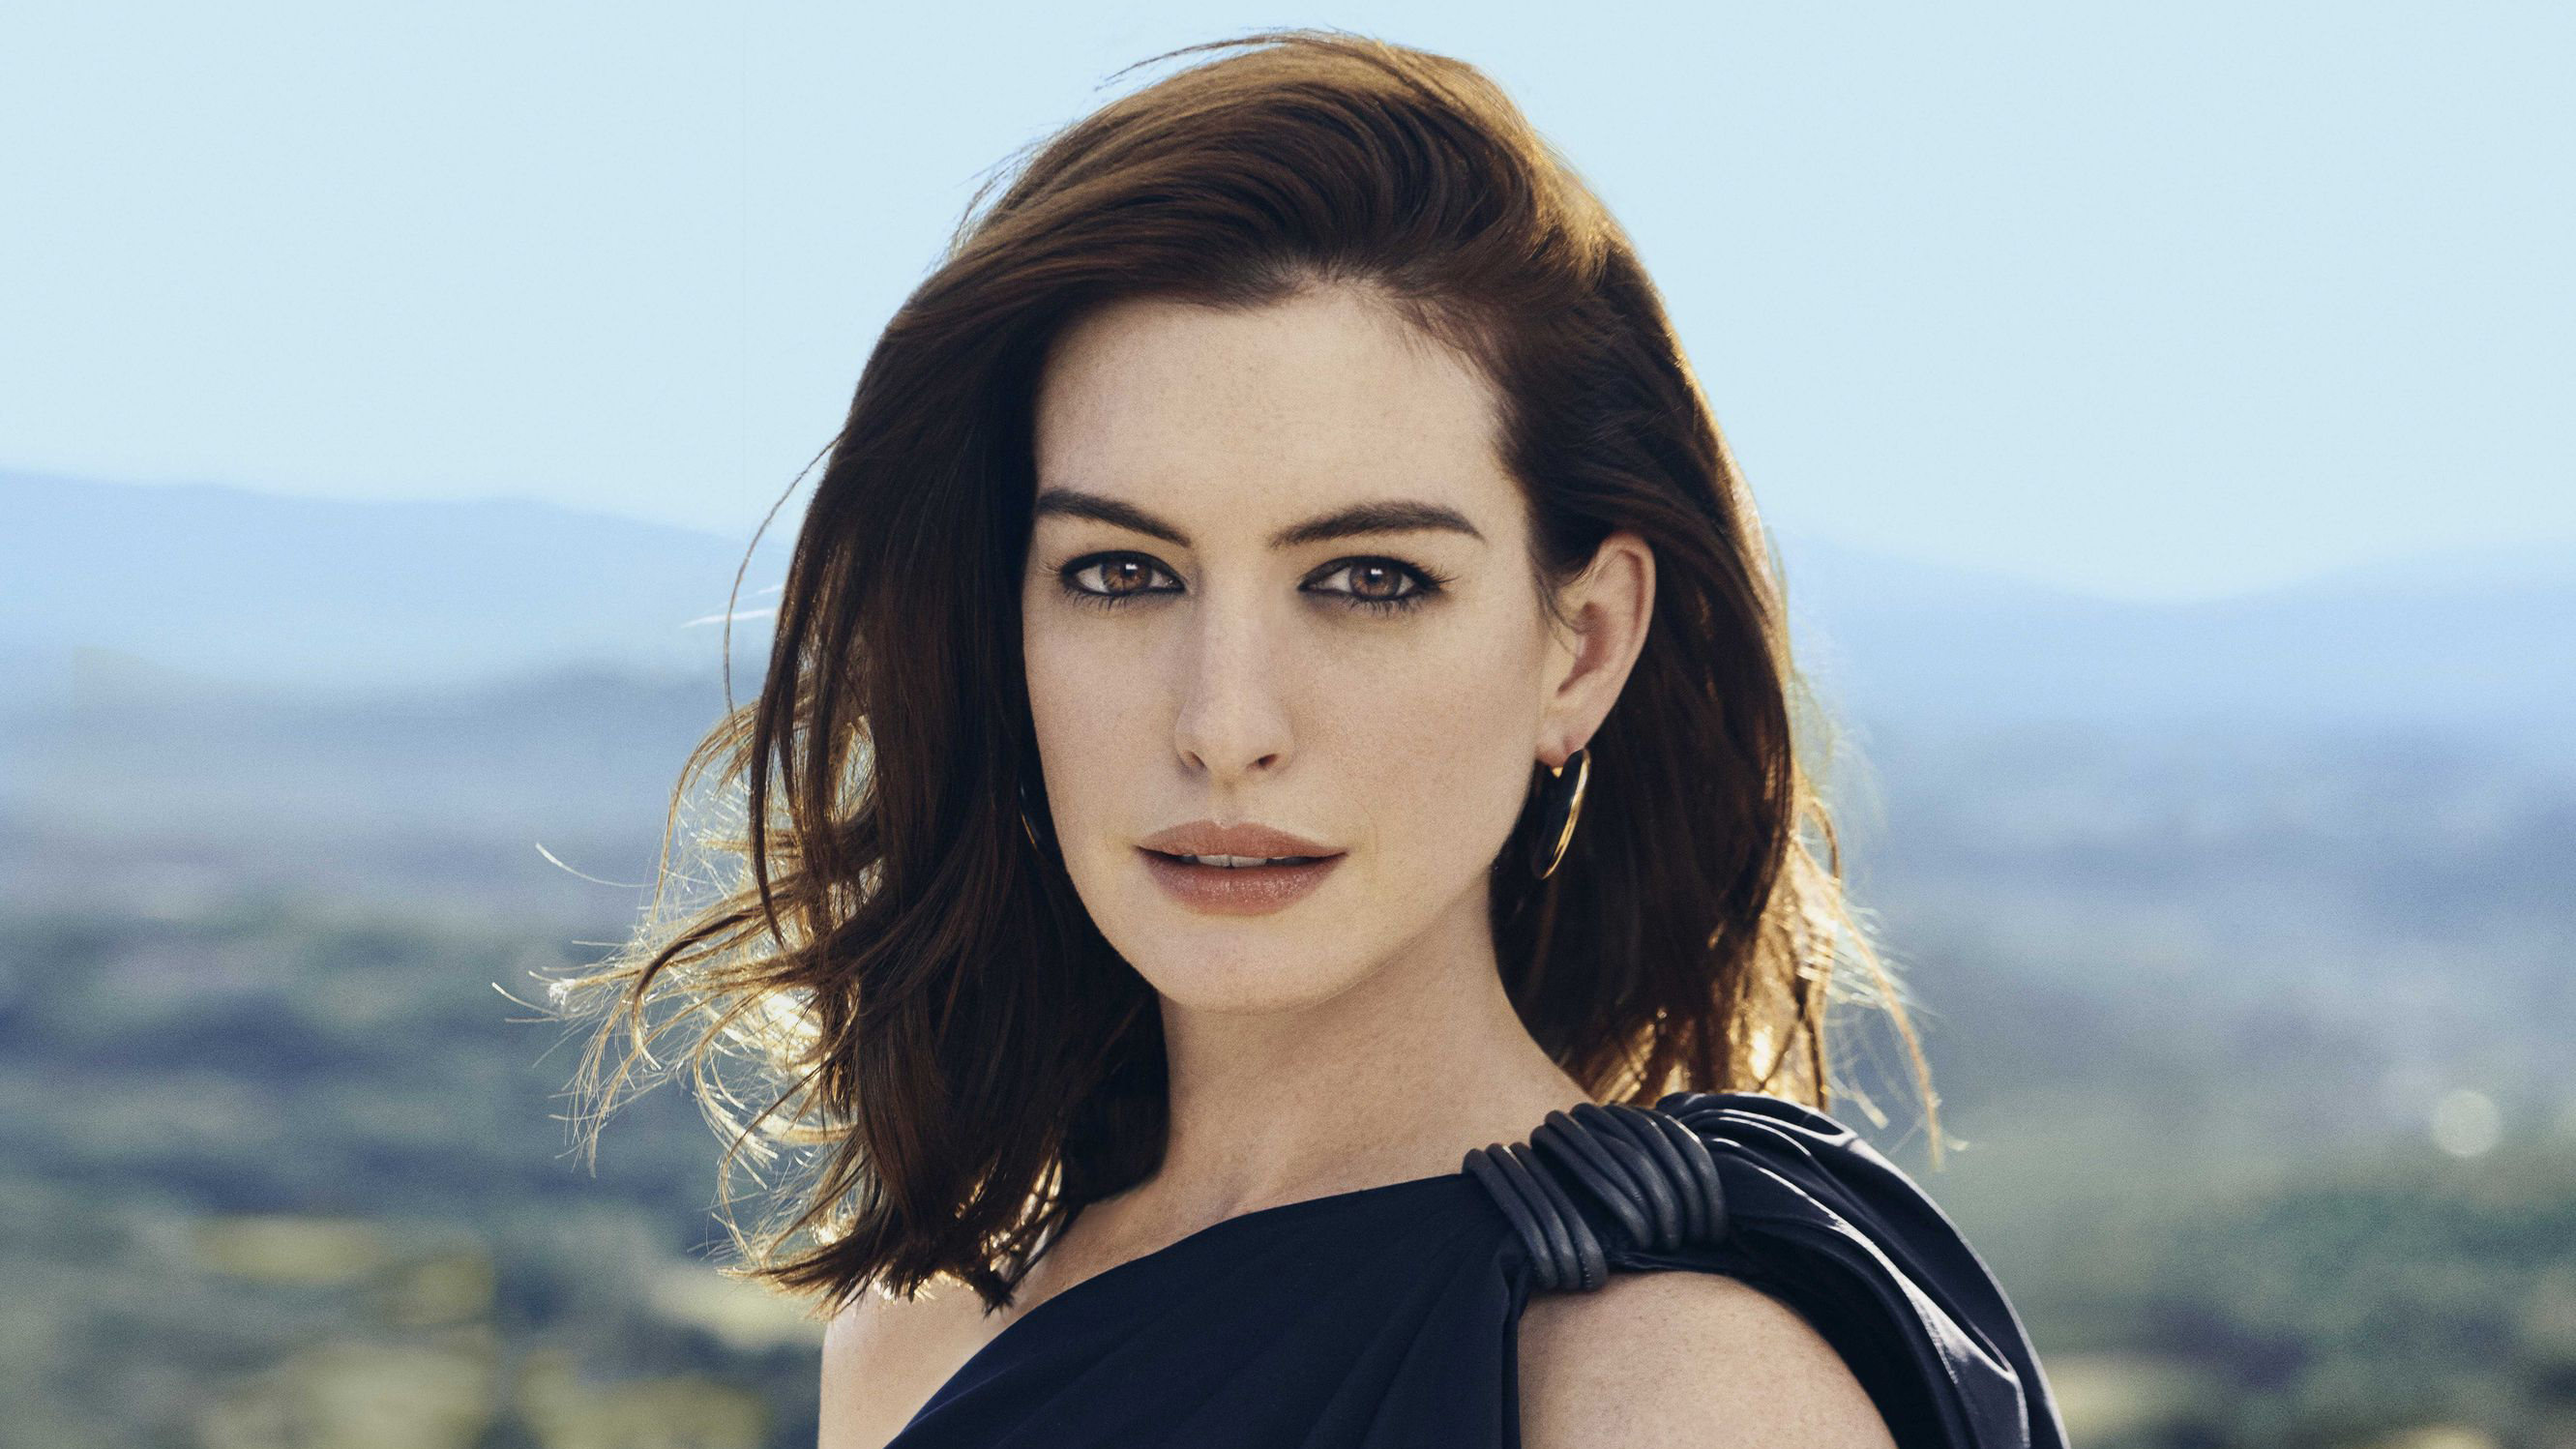 Anne Hathaway Hd Wallpaper Background Image 2663x1498